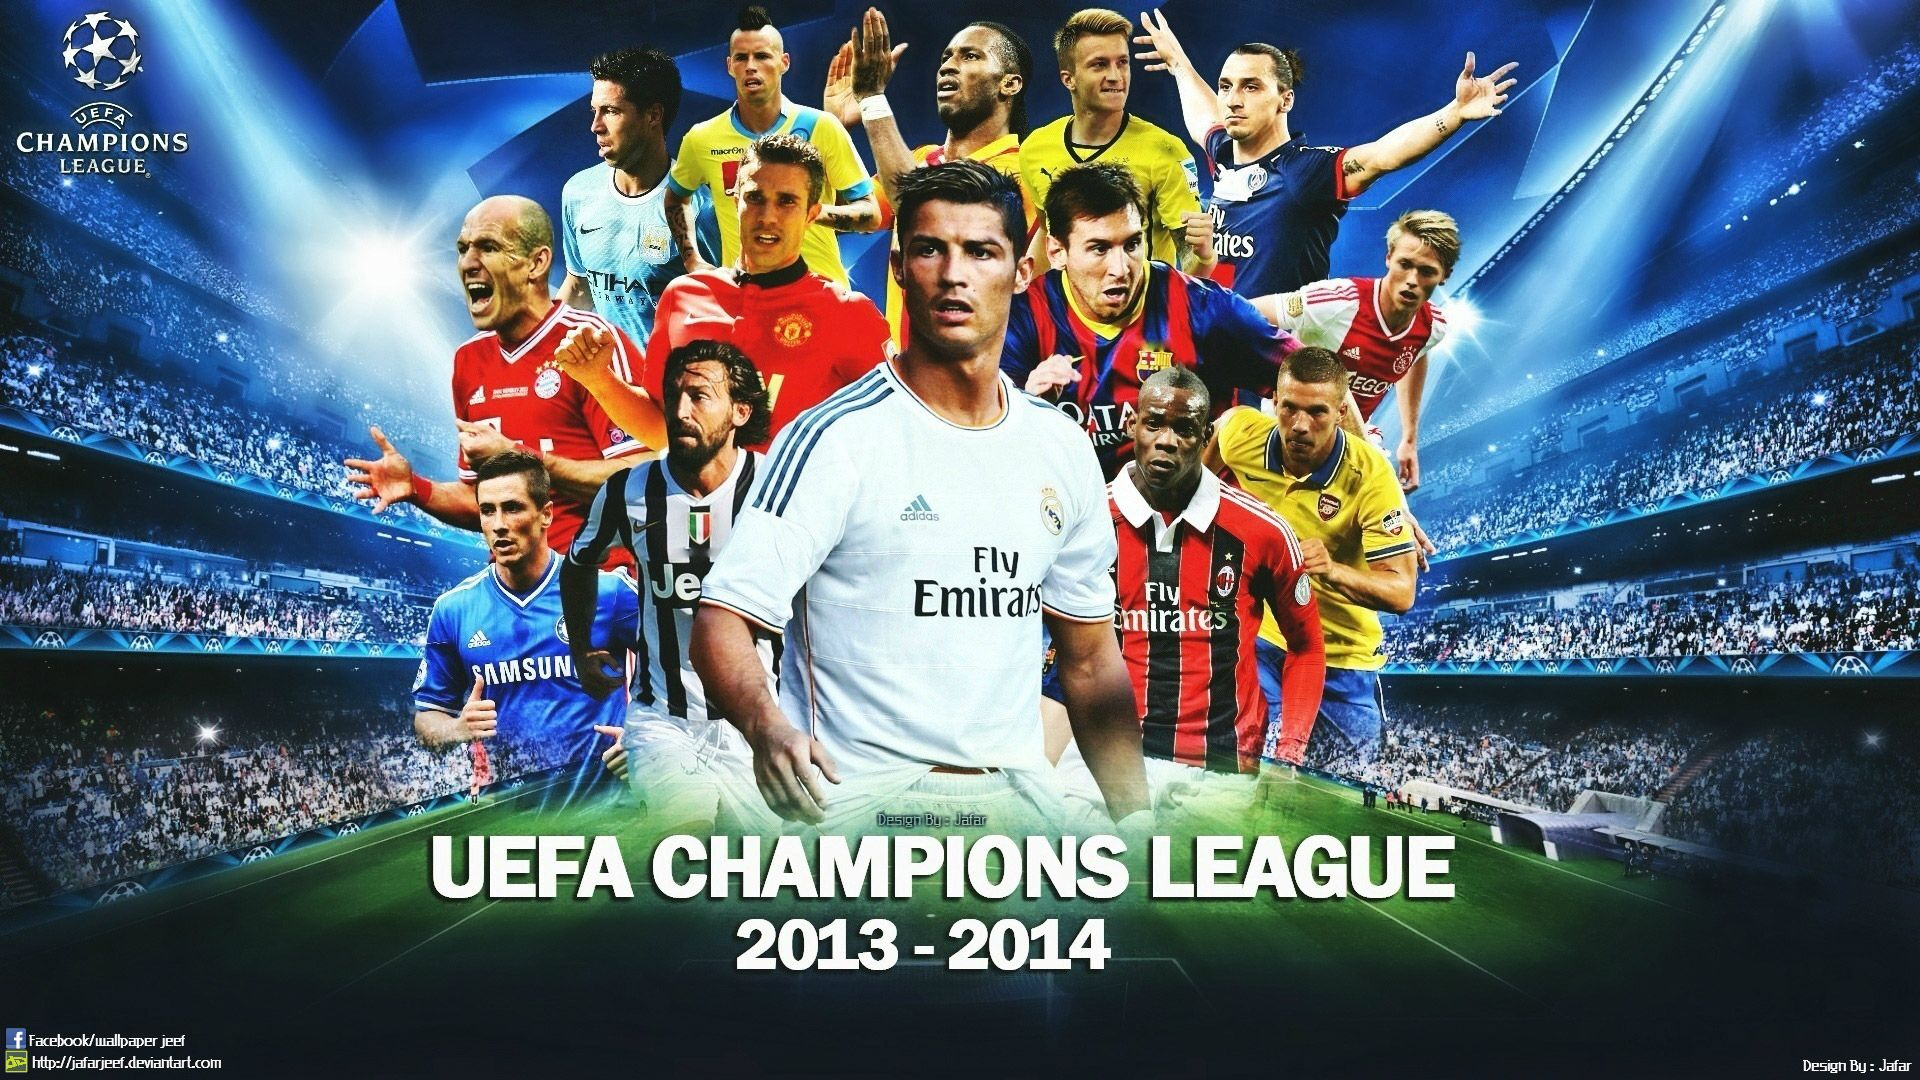 Cuadro Champions League 2014 Uefa Champions League 2014 Stuff To Buy Pinterest